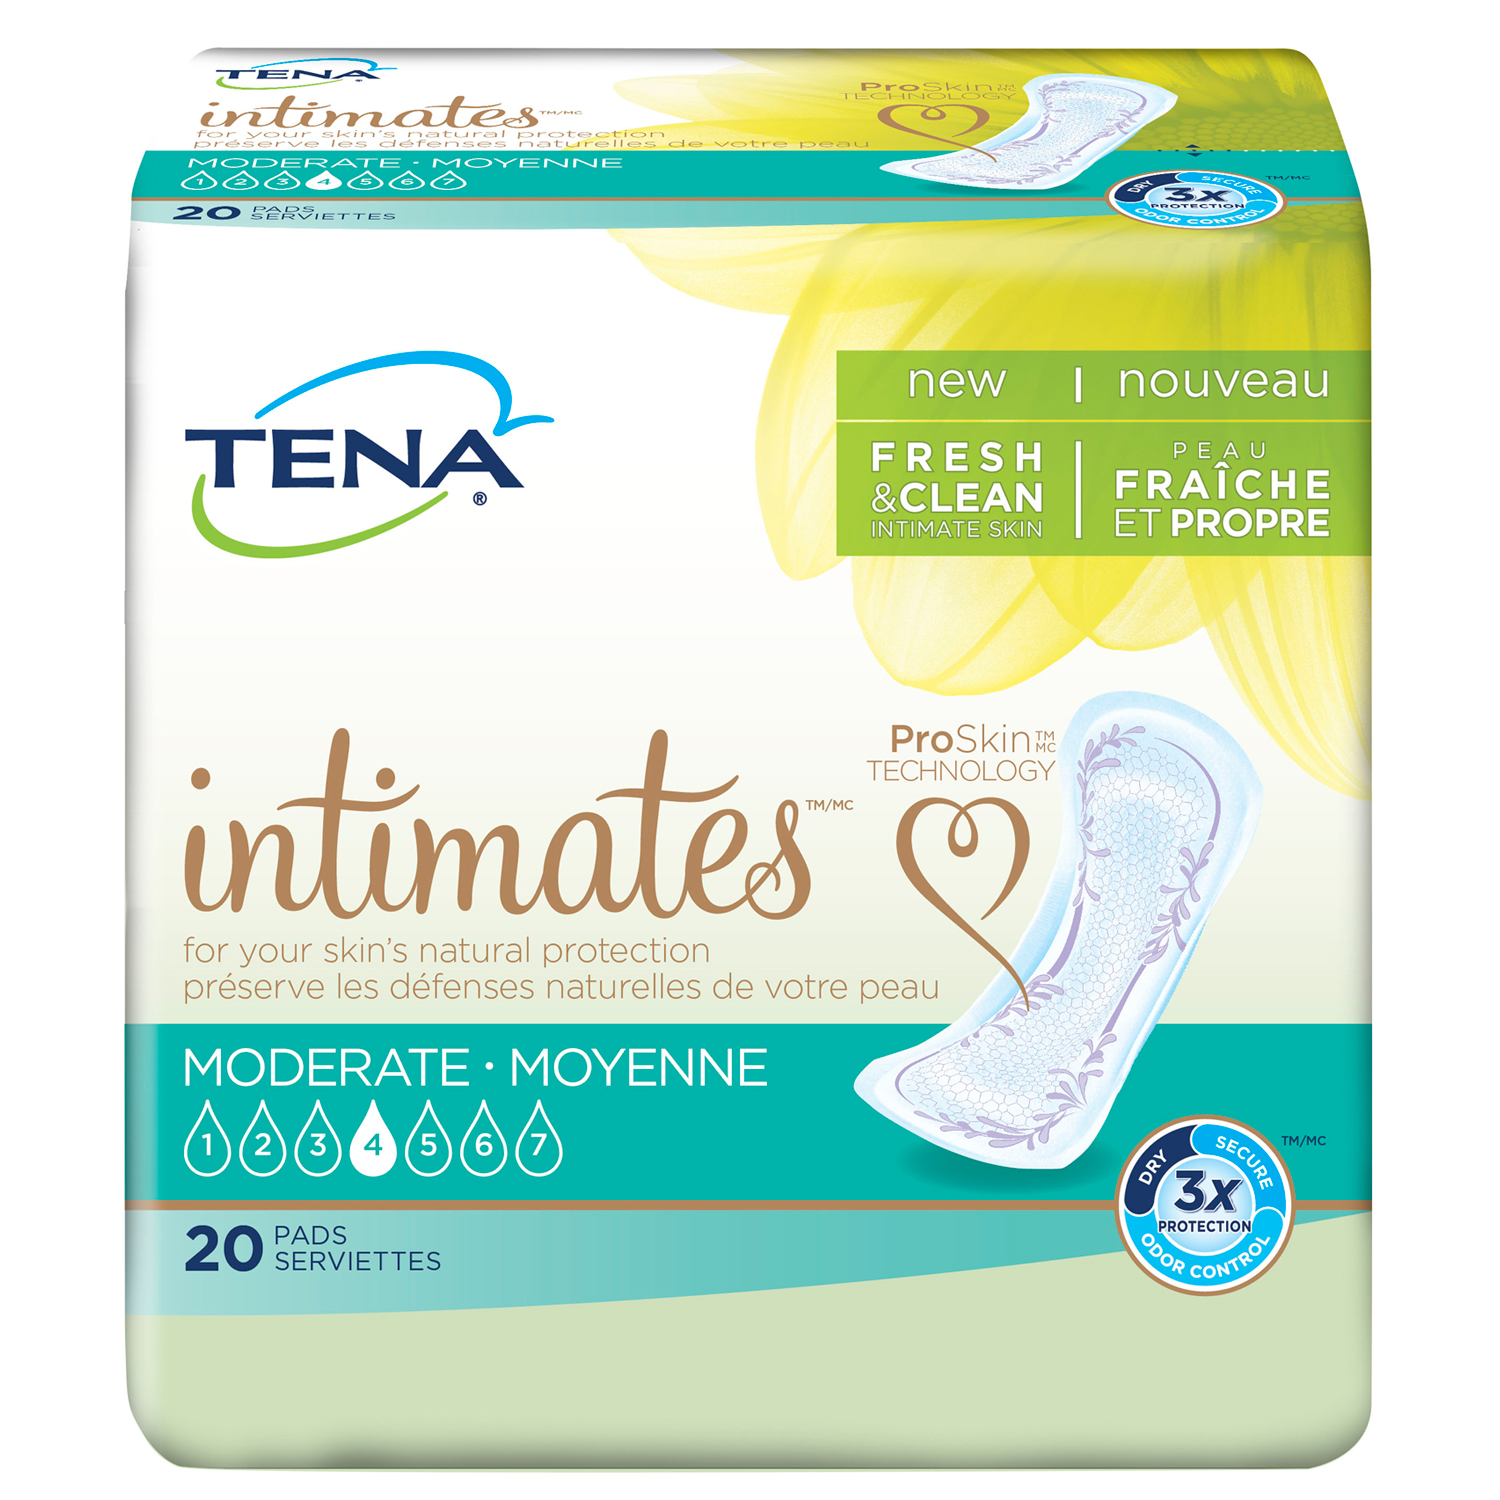 "TENA Serenity Pant Liner, Moderate, Medium 11"" Bladder Control Pads, 41300 - Case of 120"